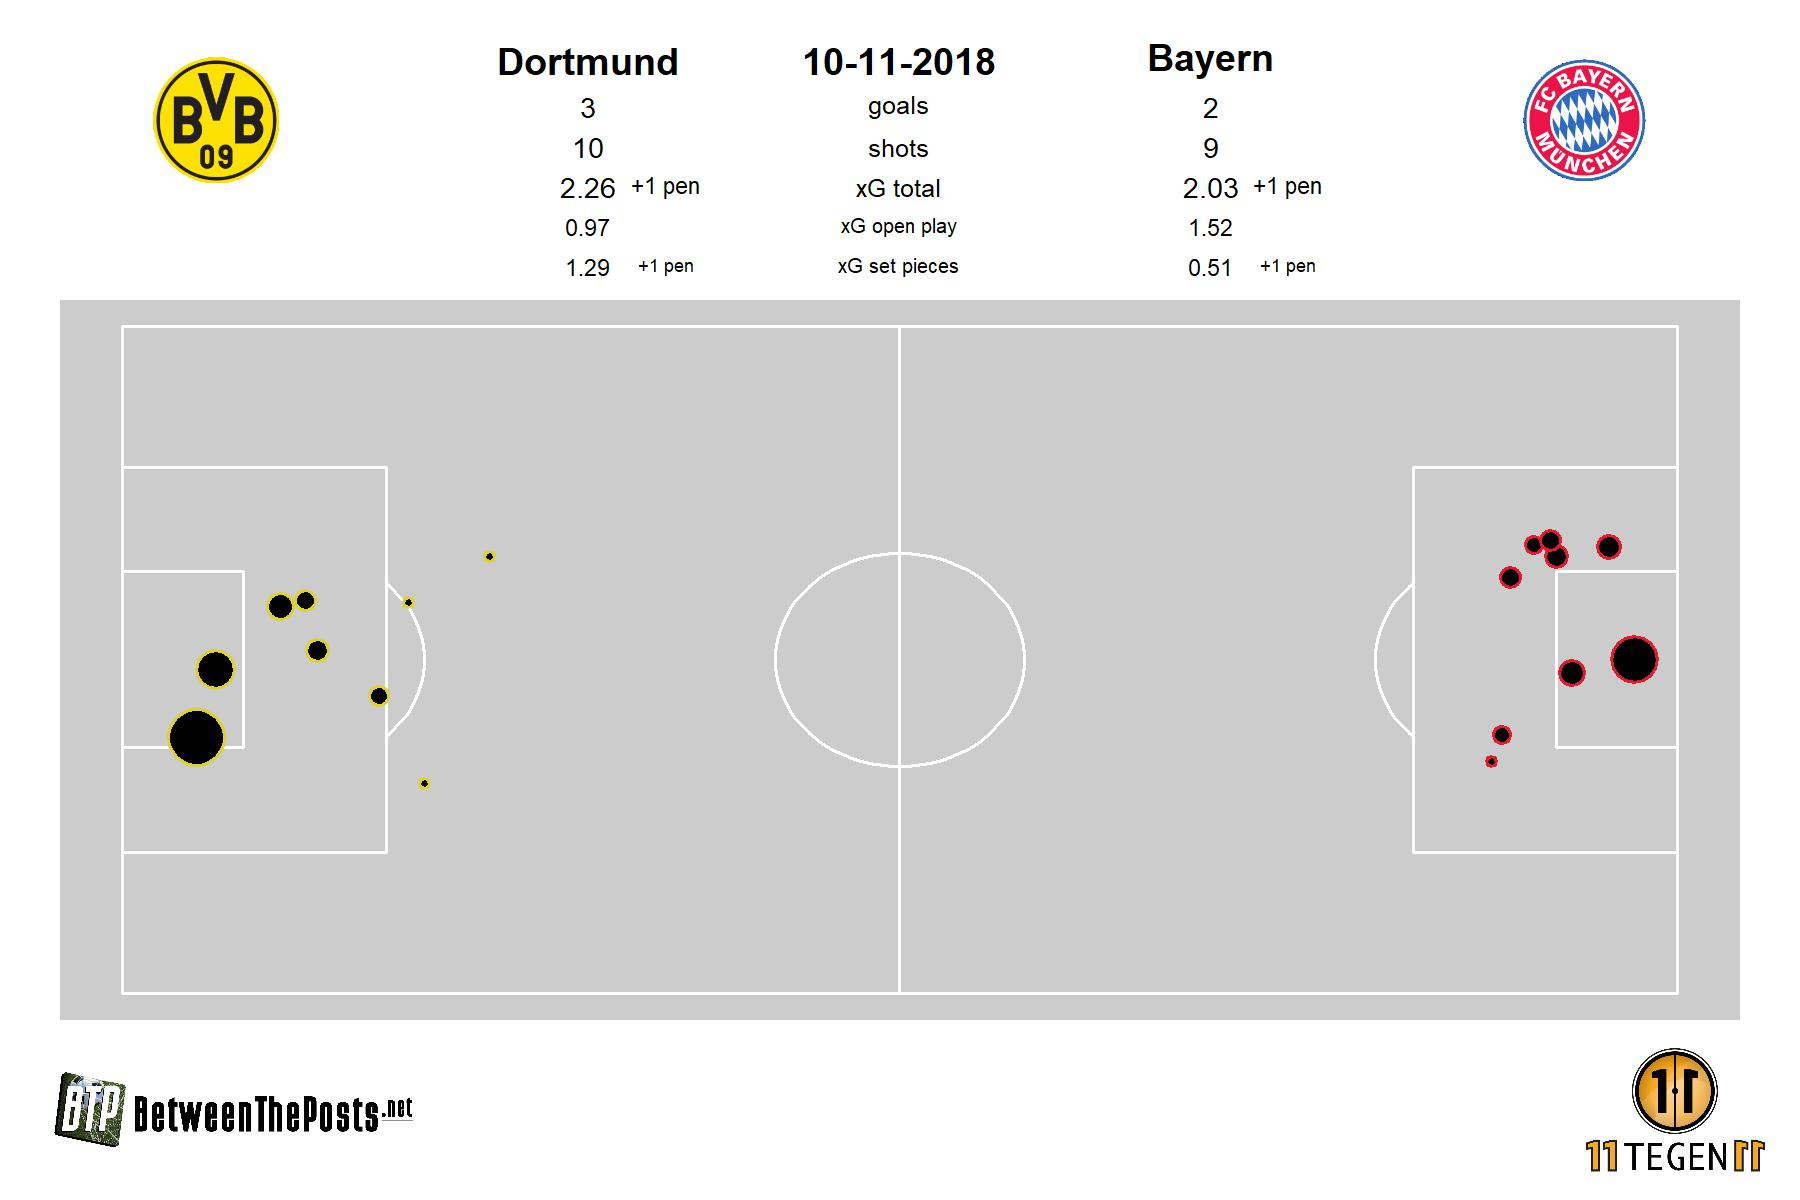 Expected goals plot for BVB Dortmund - Bayern Munich 3-2